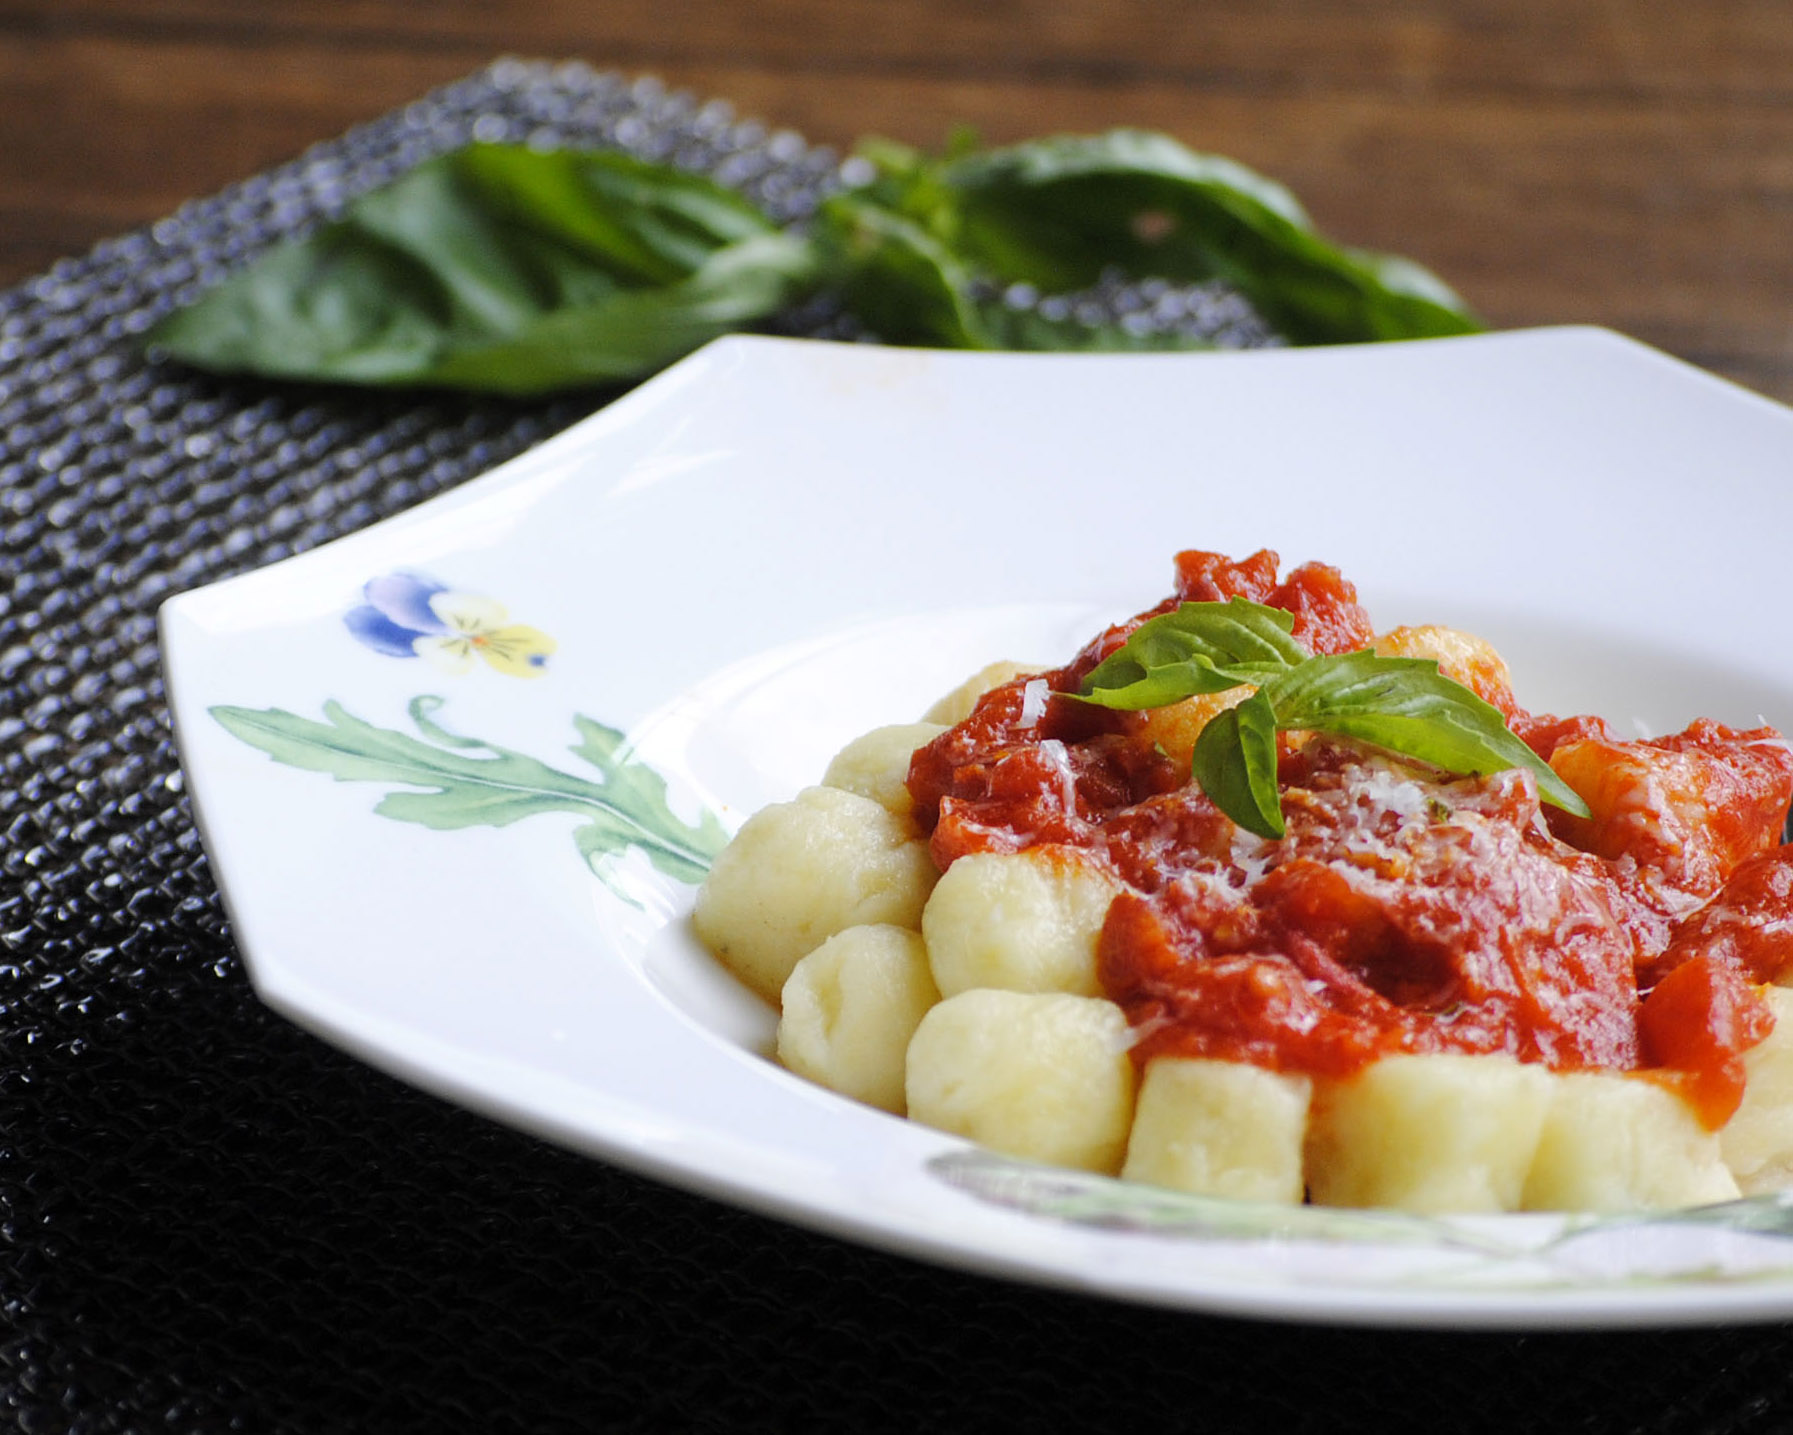 Gluten free potato gnocchi with a simple tomato basil sauce